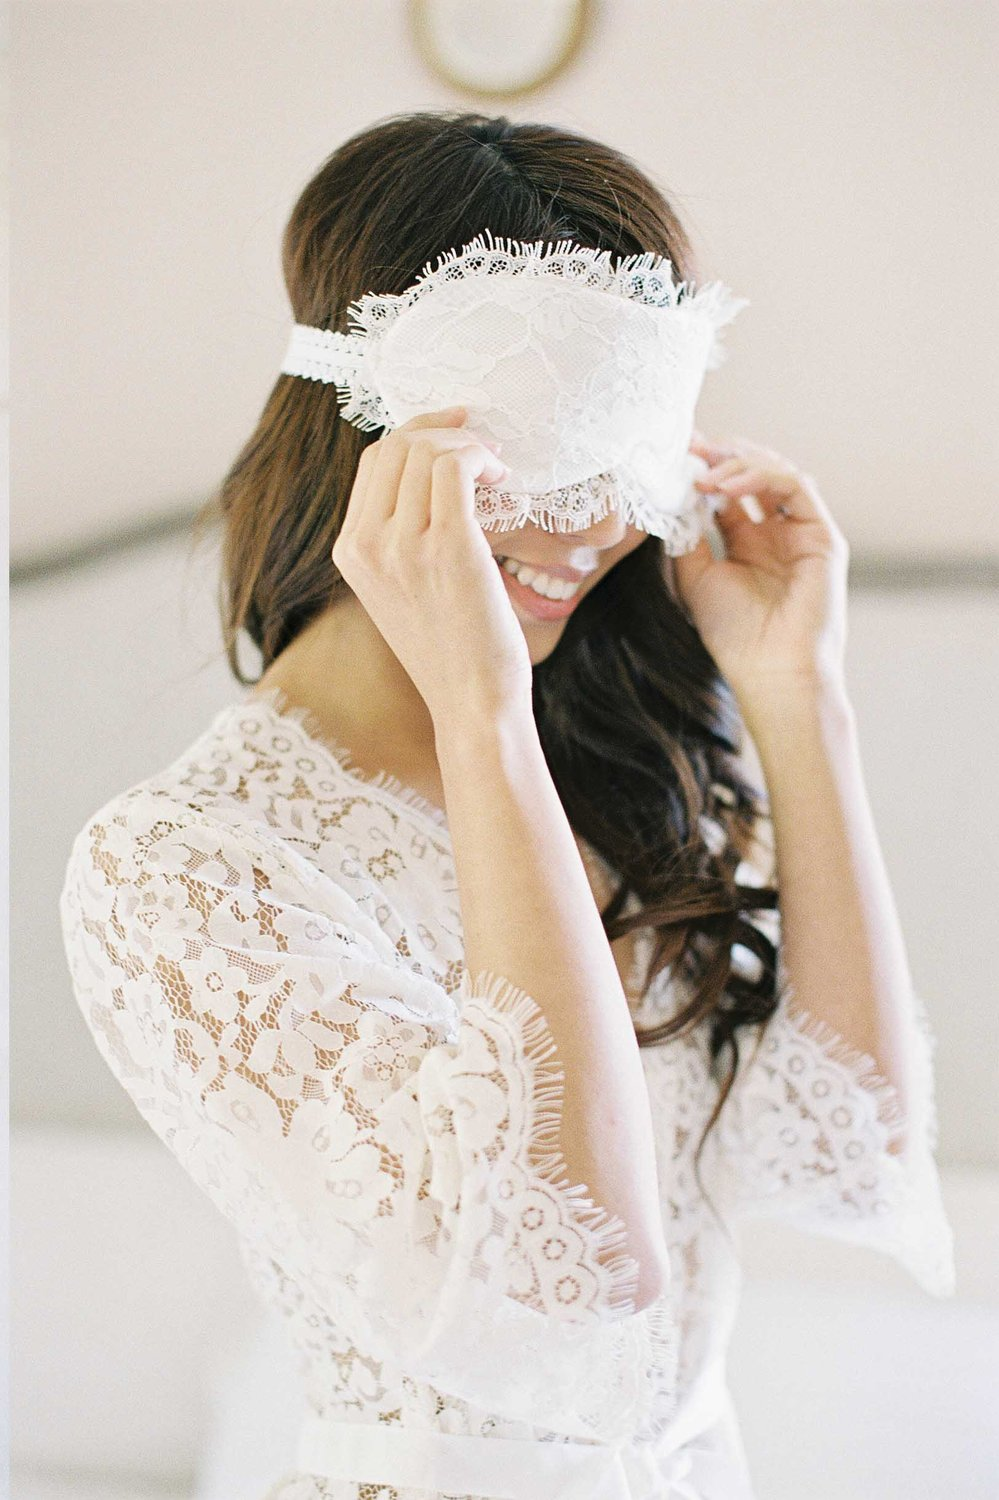 SWAN QUEEN LACE SLEEP MASK